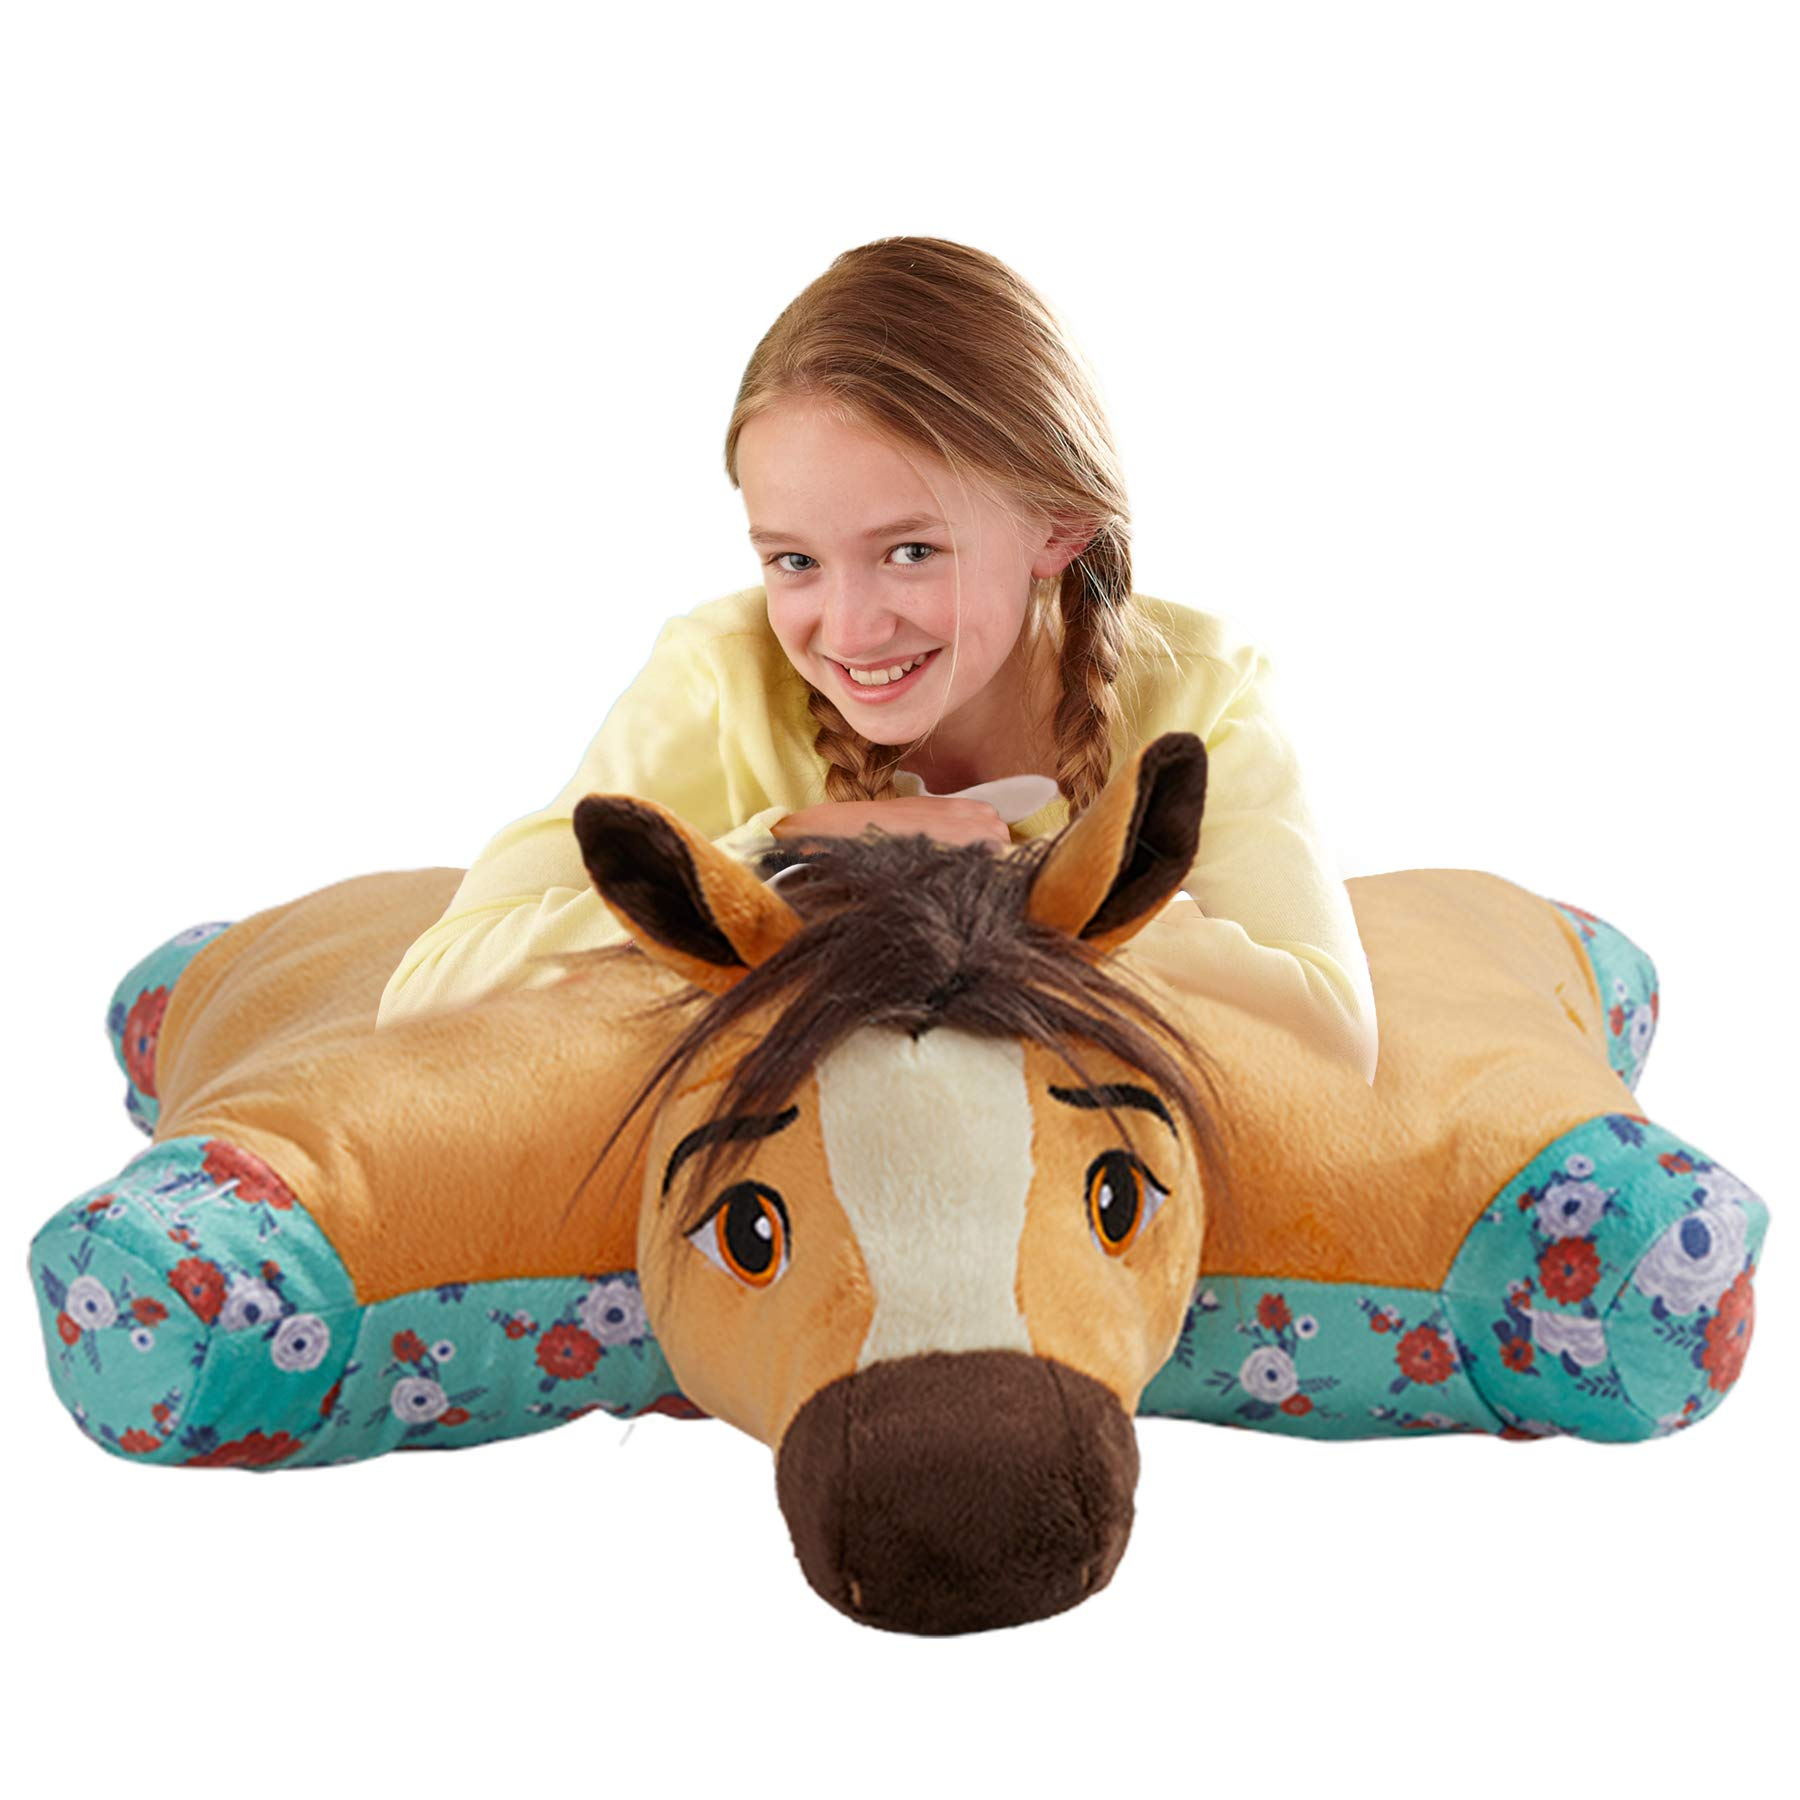 Pillow Pets Spirit Riding Free Horse - DreamWorks Extra Big Stuffed Animal Plush Toy